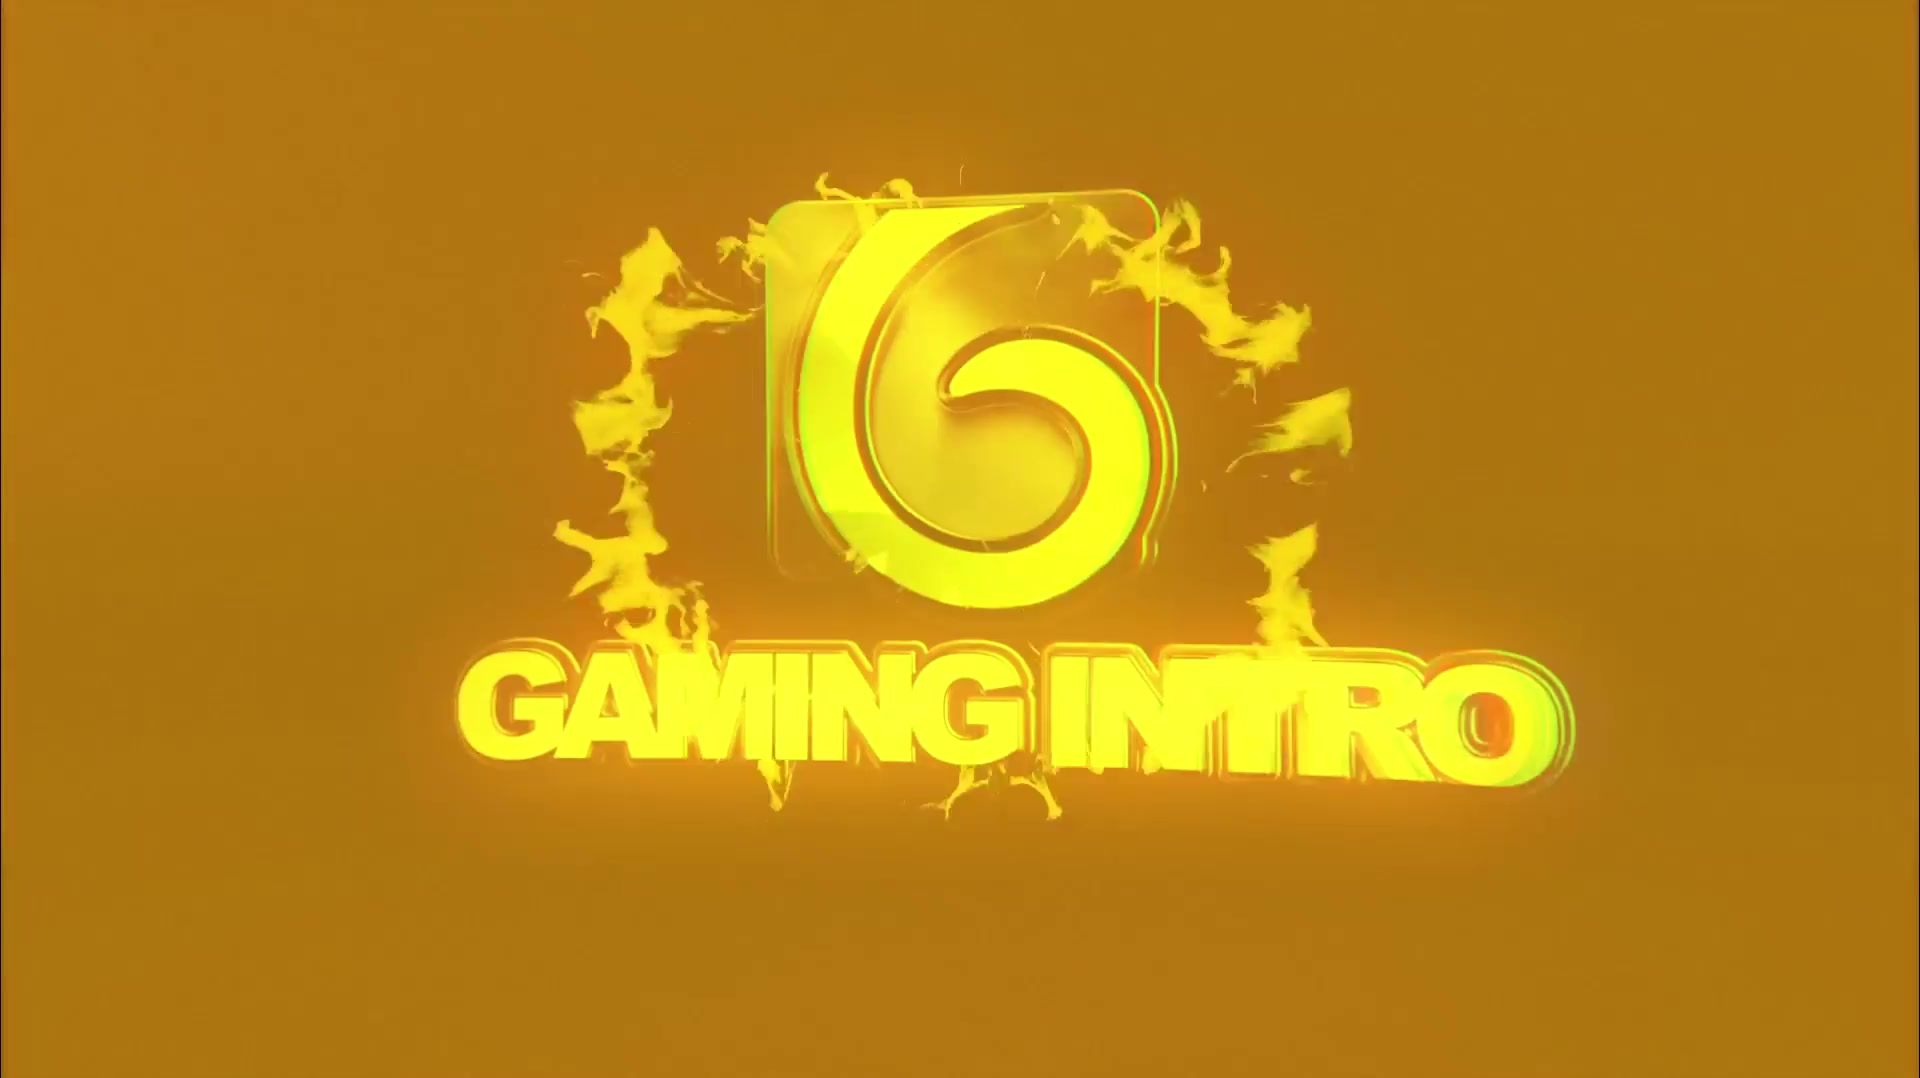 Gaming Intro Gamer channel opener Videohive 25628048 After Effects Image 11